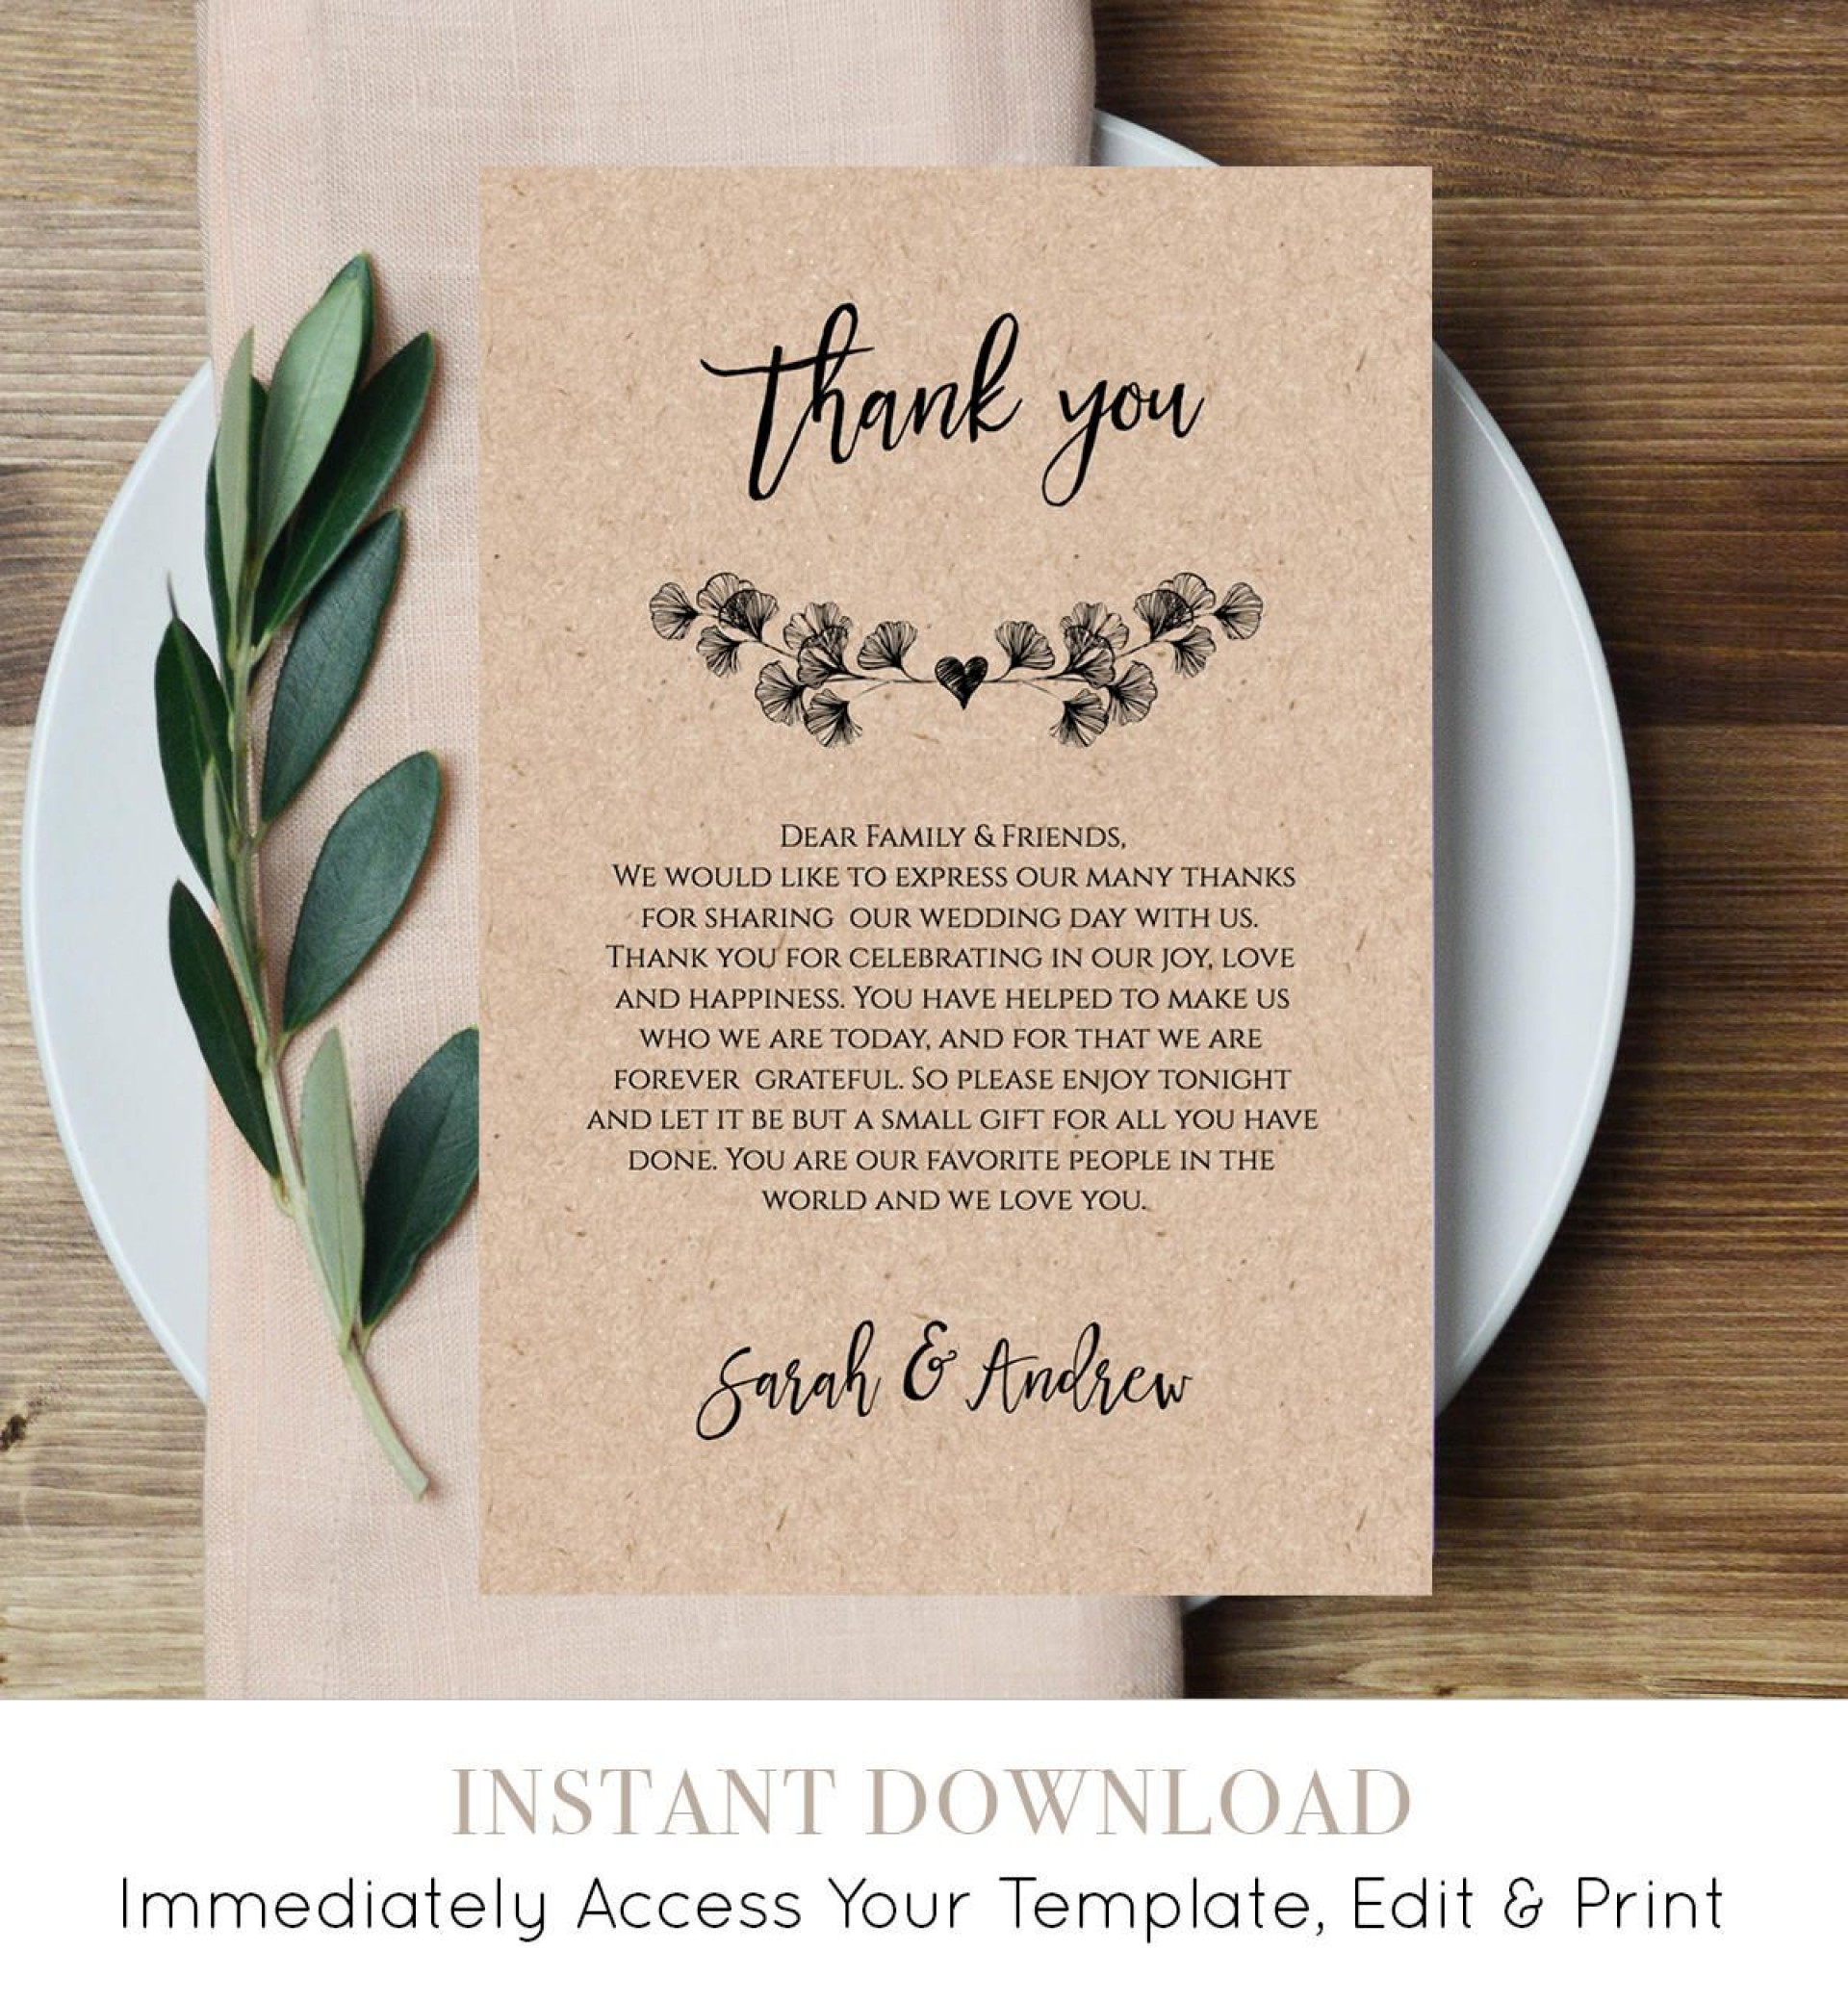 008 Impressive Thank You Note For Wedding Guest Template Sample  Card1920